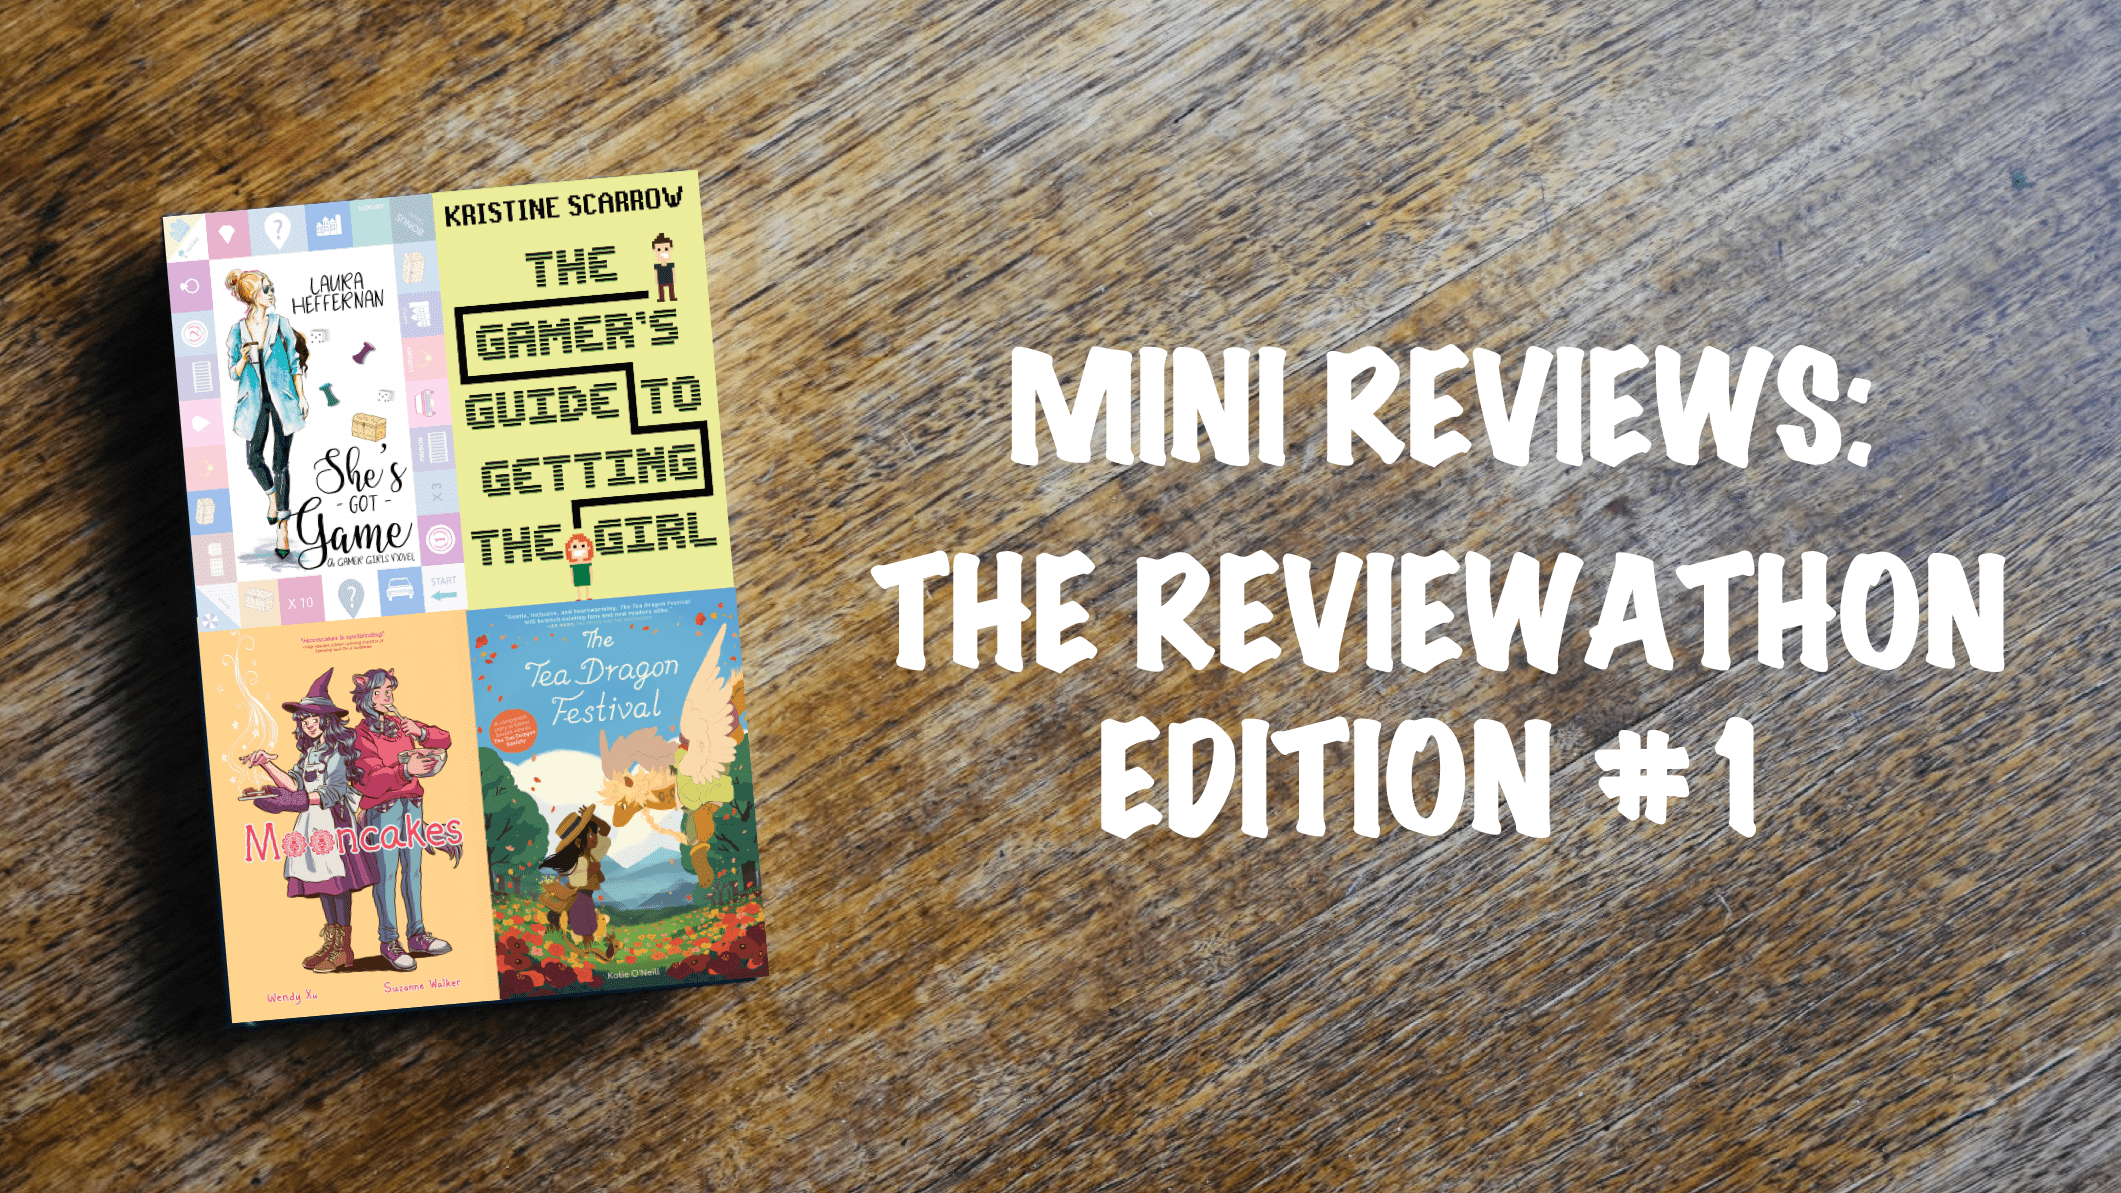 Mini reviews banner: Reviewathon edition, featuring She's got Game, The Gamer's Guide to Getting the Girl, Mooncakes and The Tea Dragon Festival